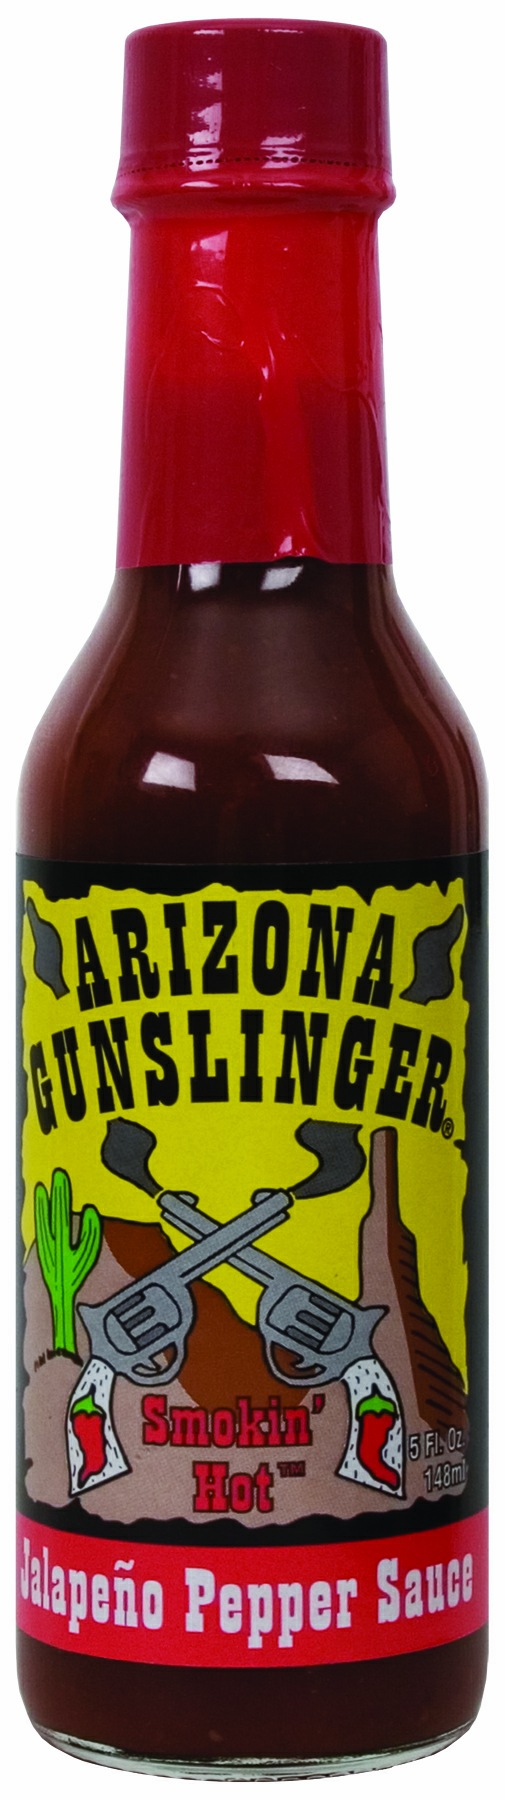 Arizona gunslinger AZ hot pepper red jalapeno sauce